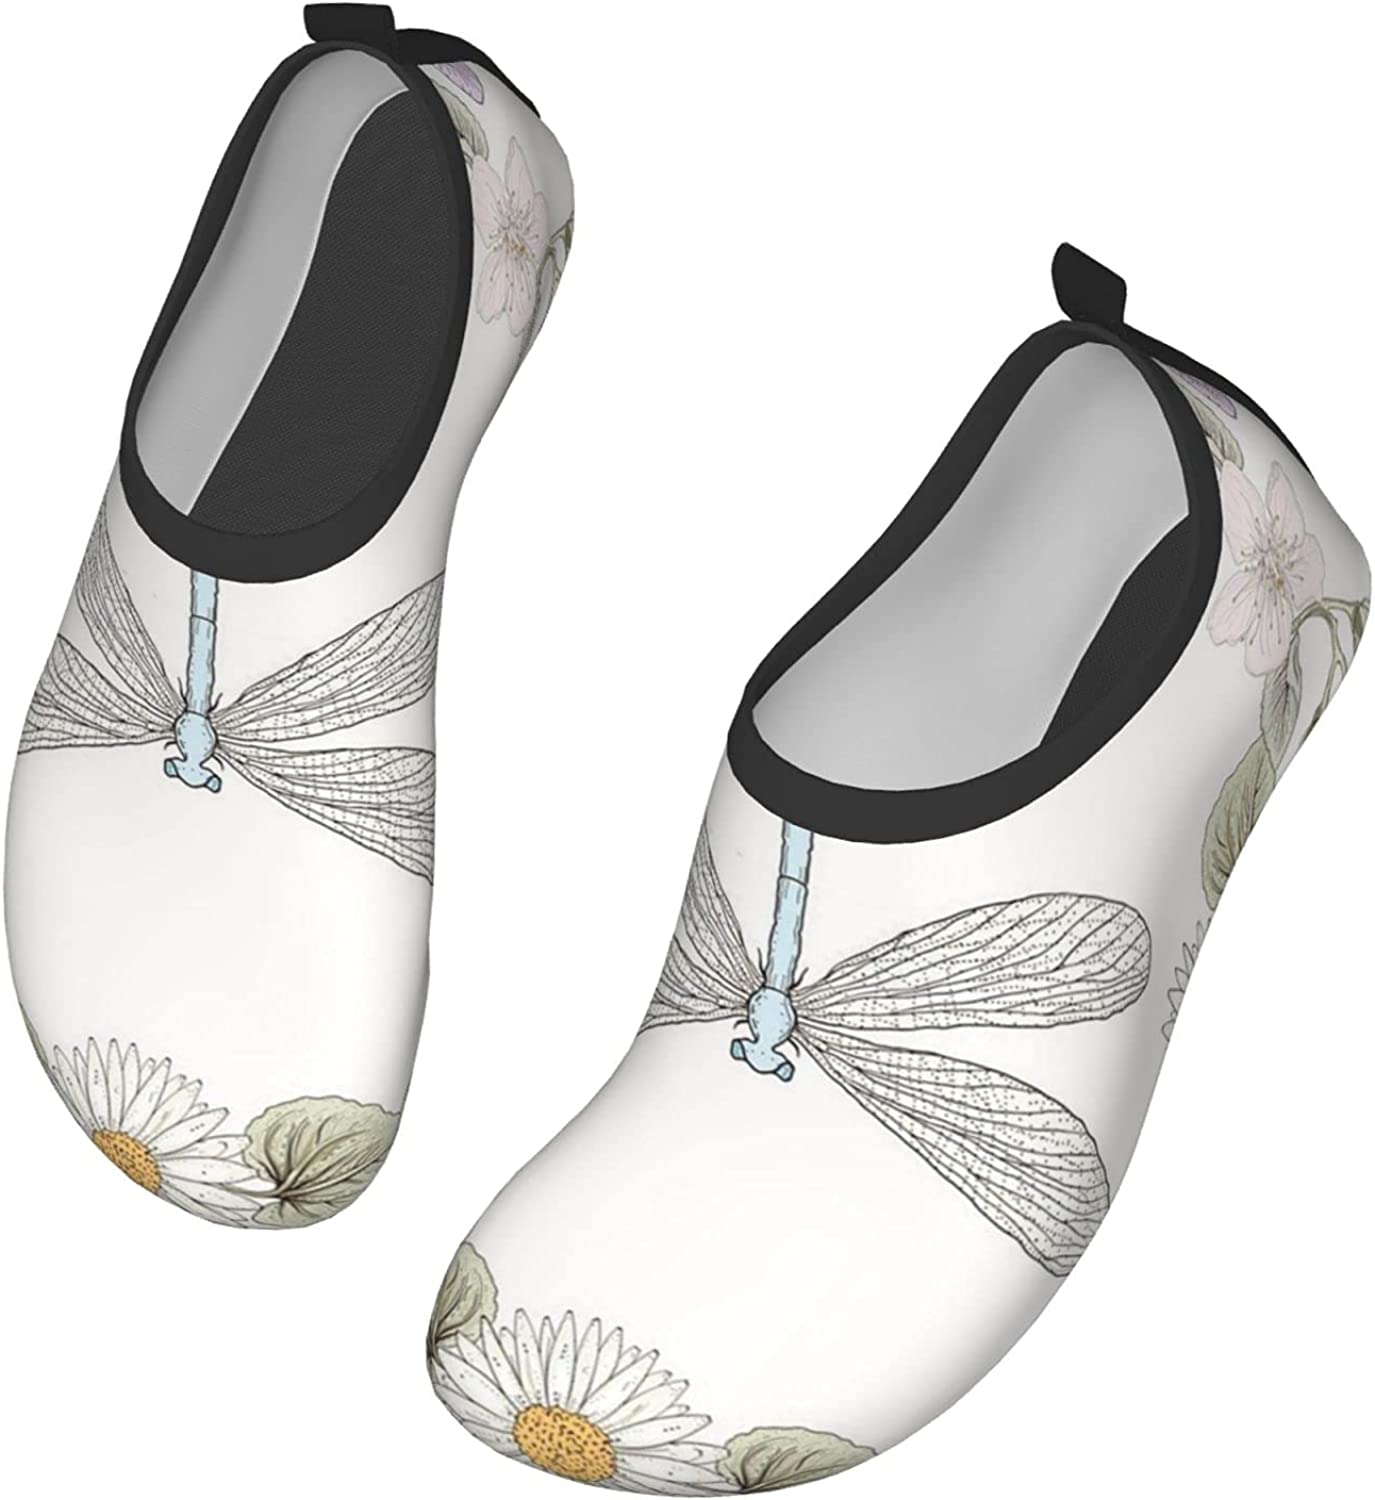 Dragonfly Shower Curtain, Vintage Retro Farm Life Inspired Moth and Daisy Lily Leaf Image Water Shoes for Women and Men